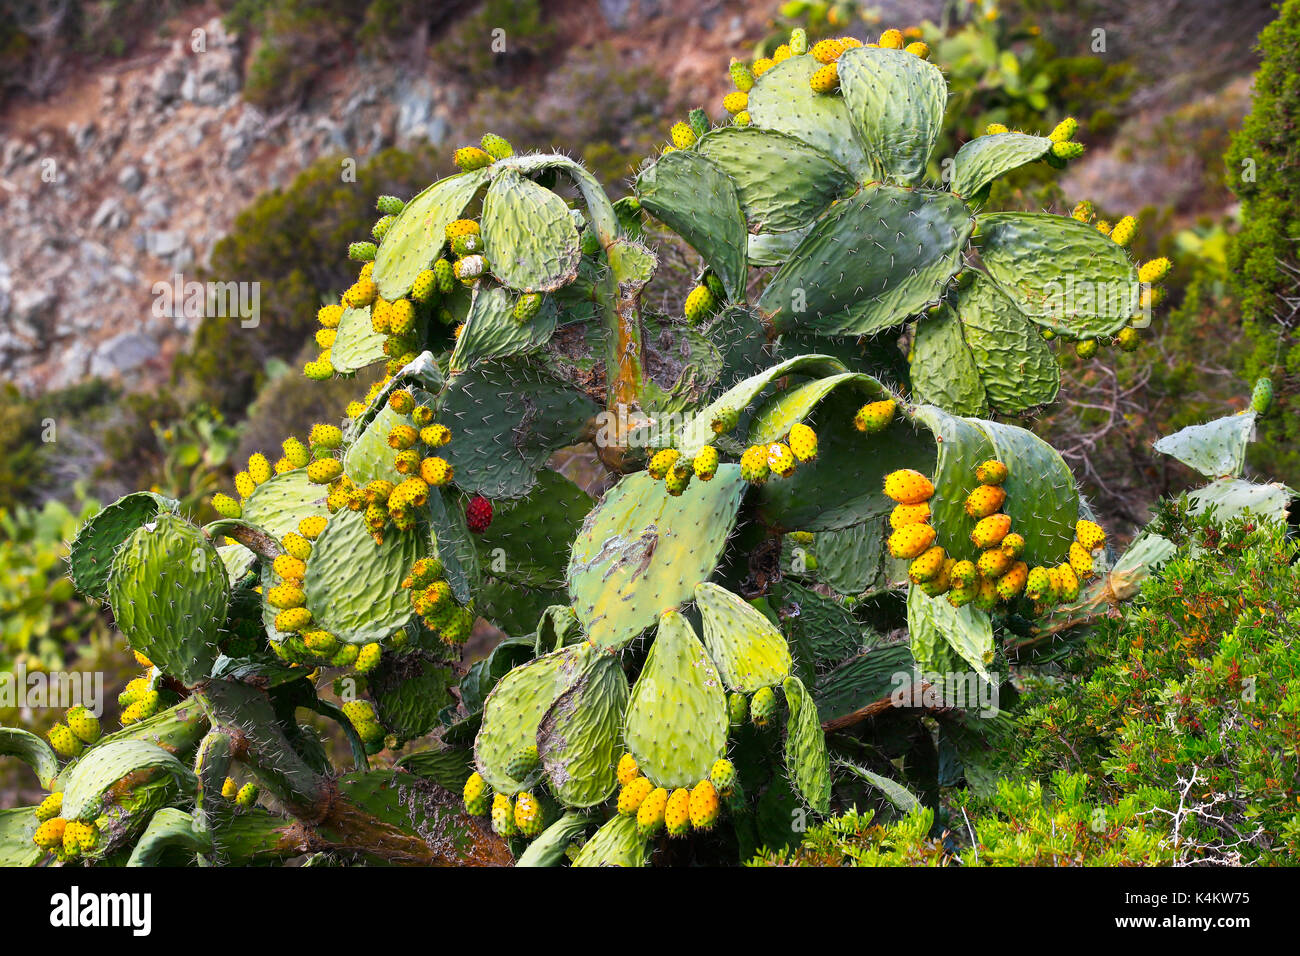 Prickly pear cactus fruit, Sardinia, Italy - Stock Image